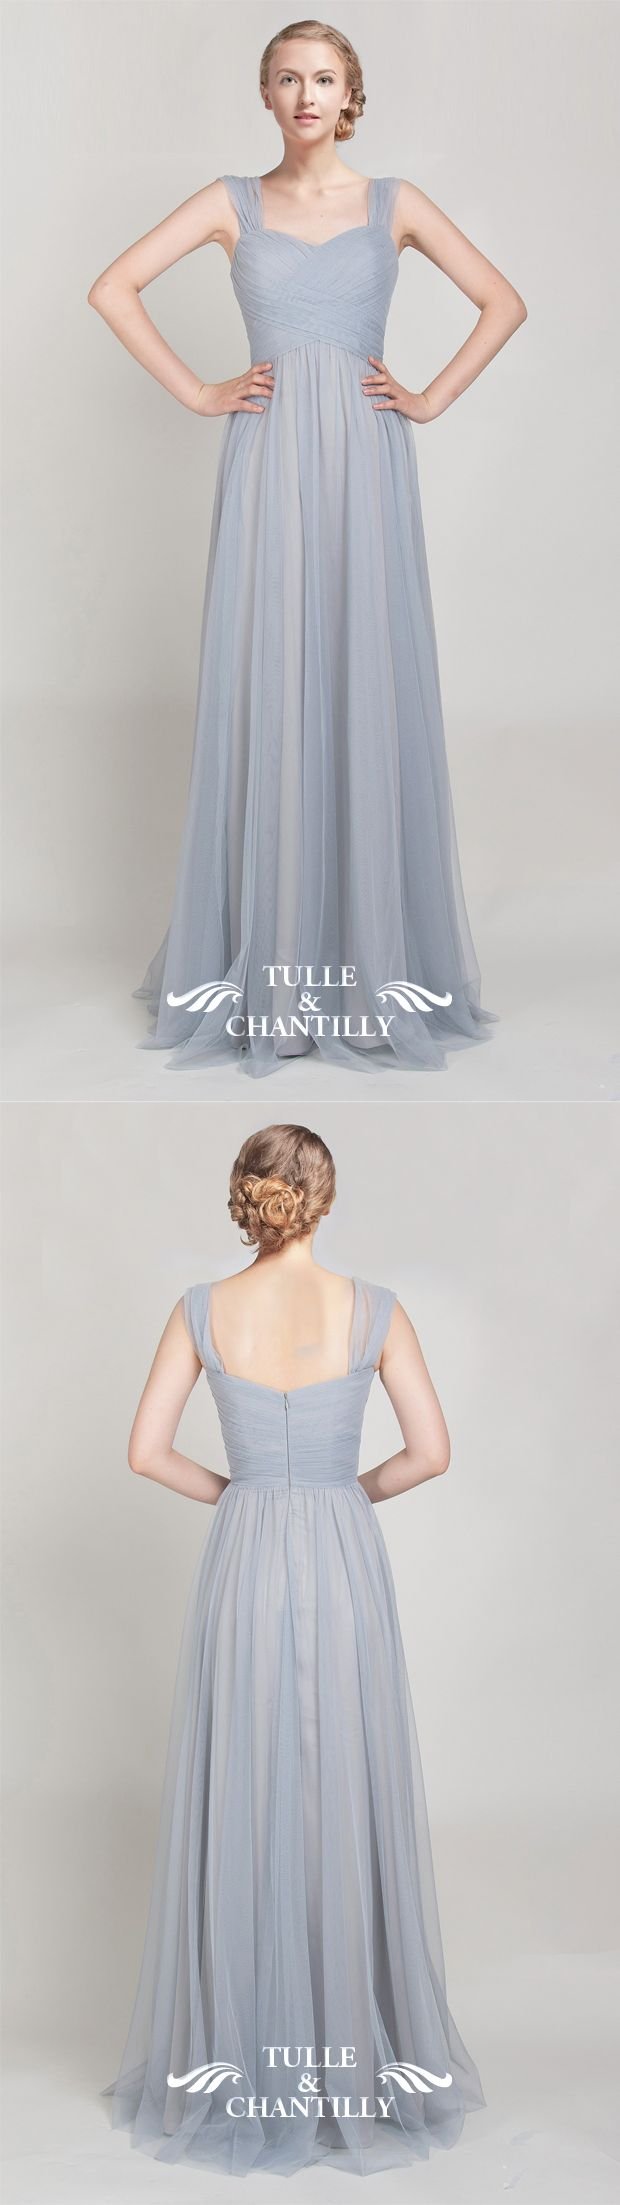 Gorgeous in gray bridesmaids dresses charchol grey pinterest